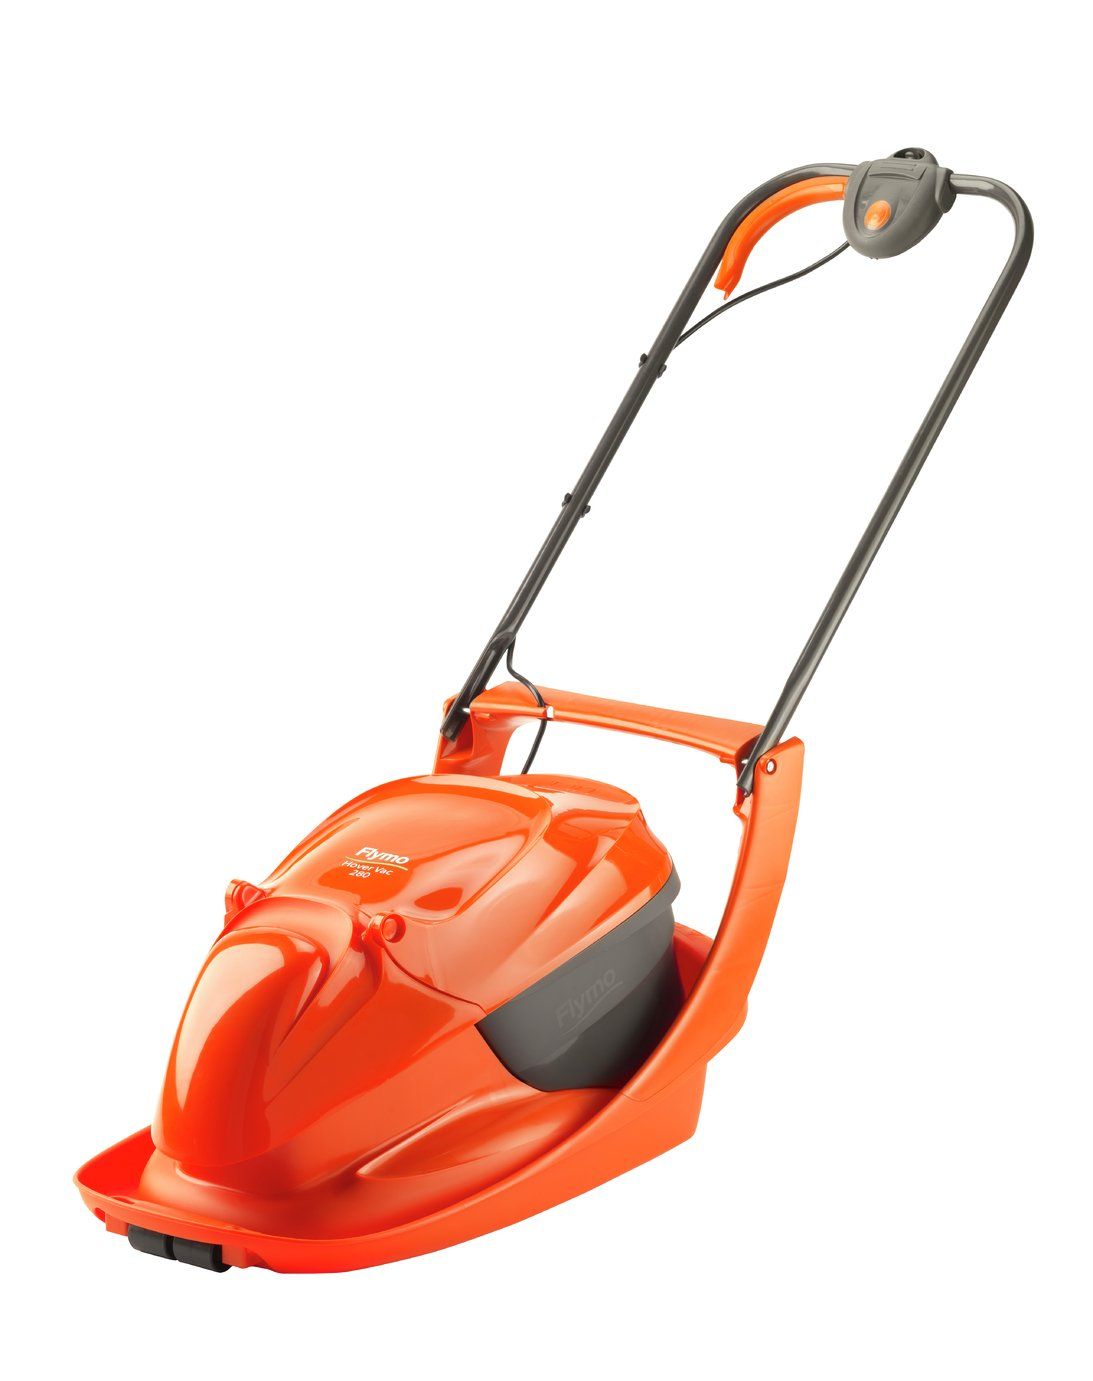 Flymo HoverVac 280 28cm Corded Hover Lawnmower - 1300W